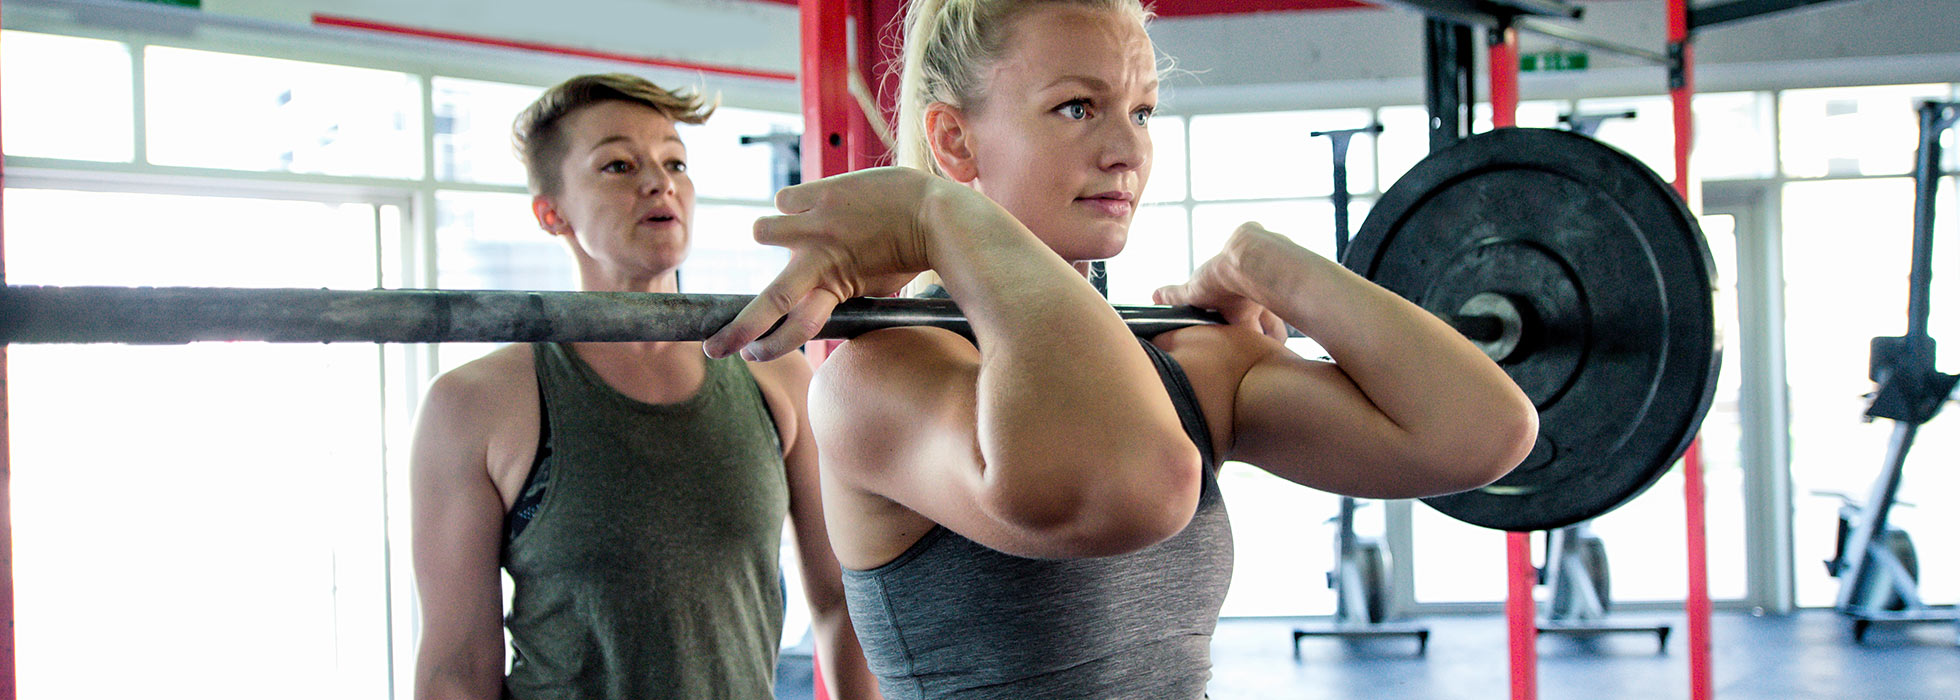 Best Personal Training In Millburn Is At Motion Fitness Club